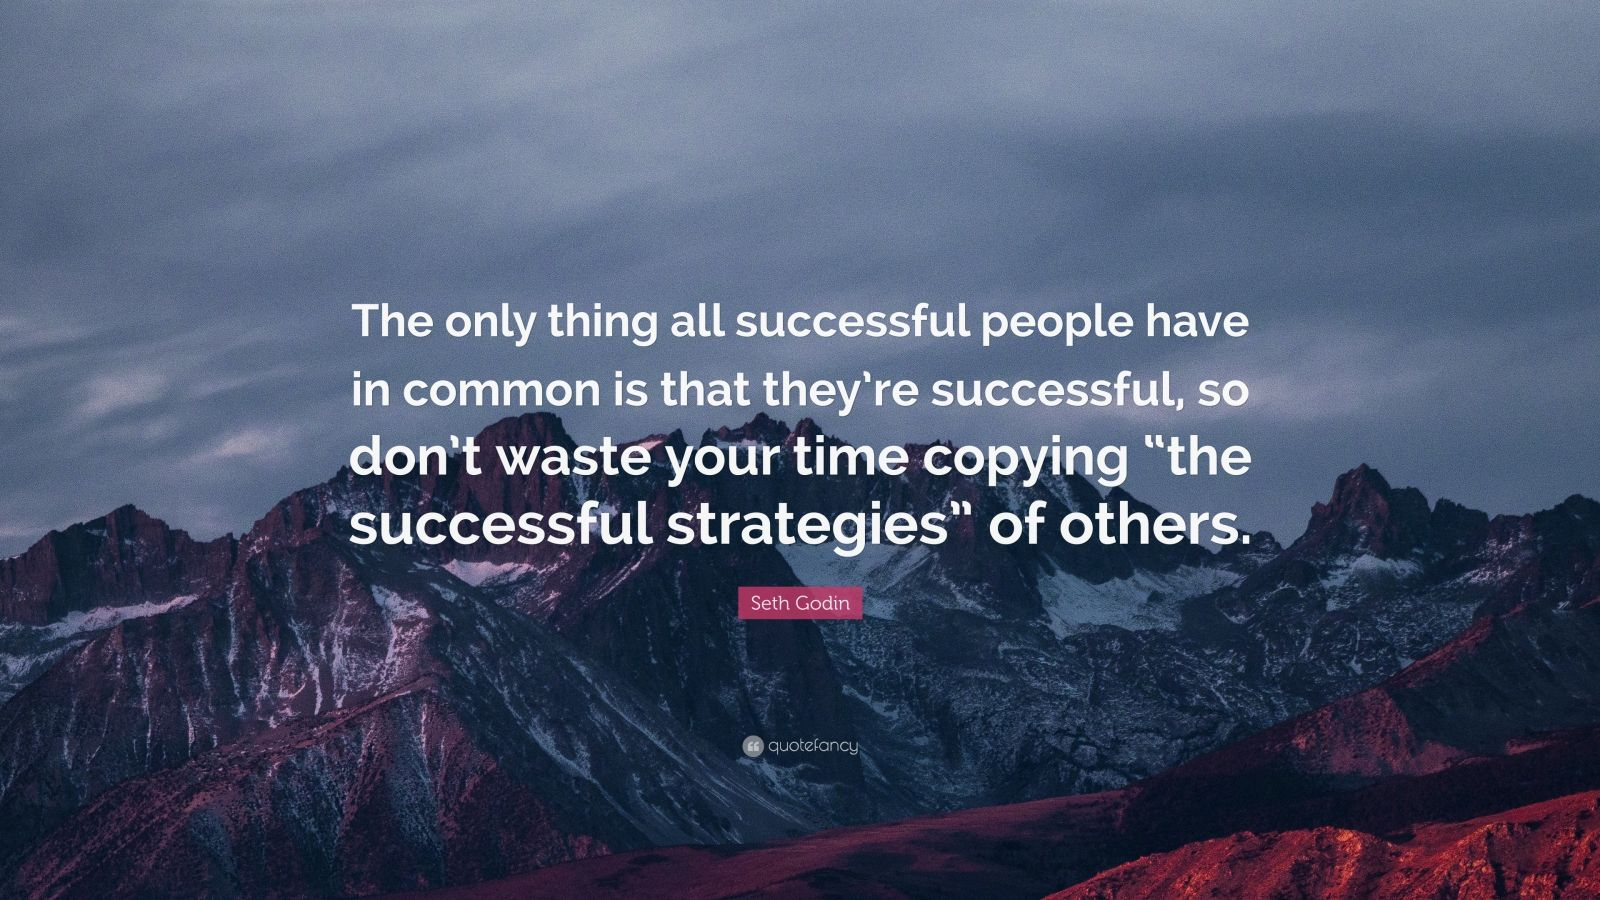 """Seth Godin Quote: """"The only thing all successful people have in common is that they're successful, so don't waste your time copying """"the successful strategies"""" of others."""""""